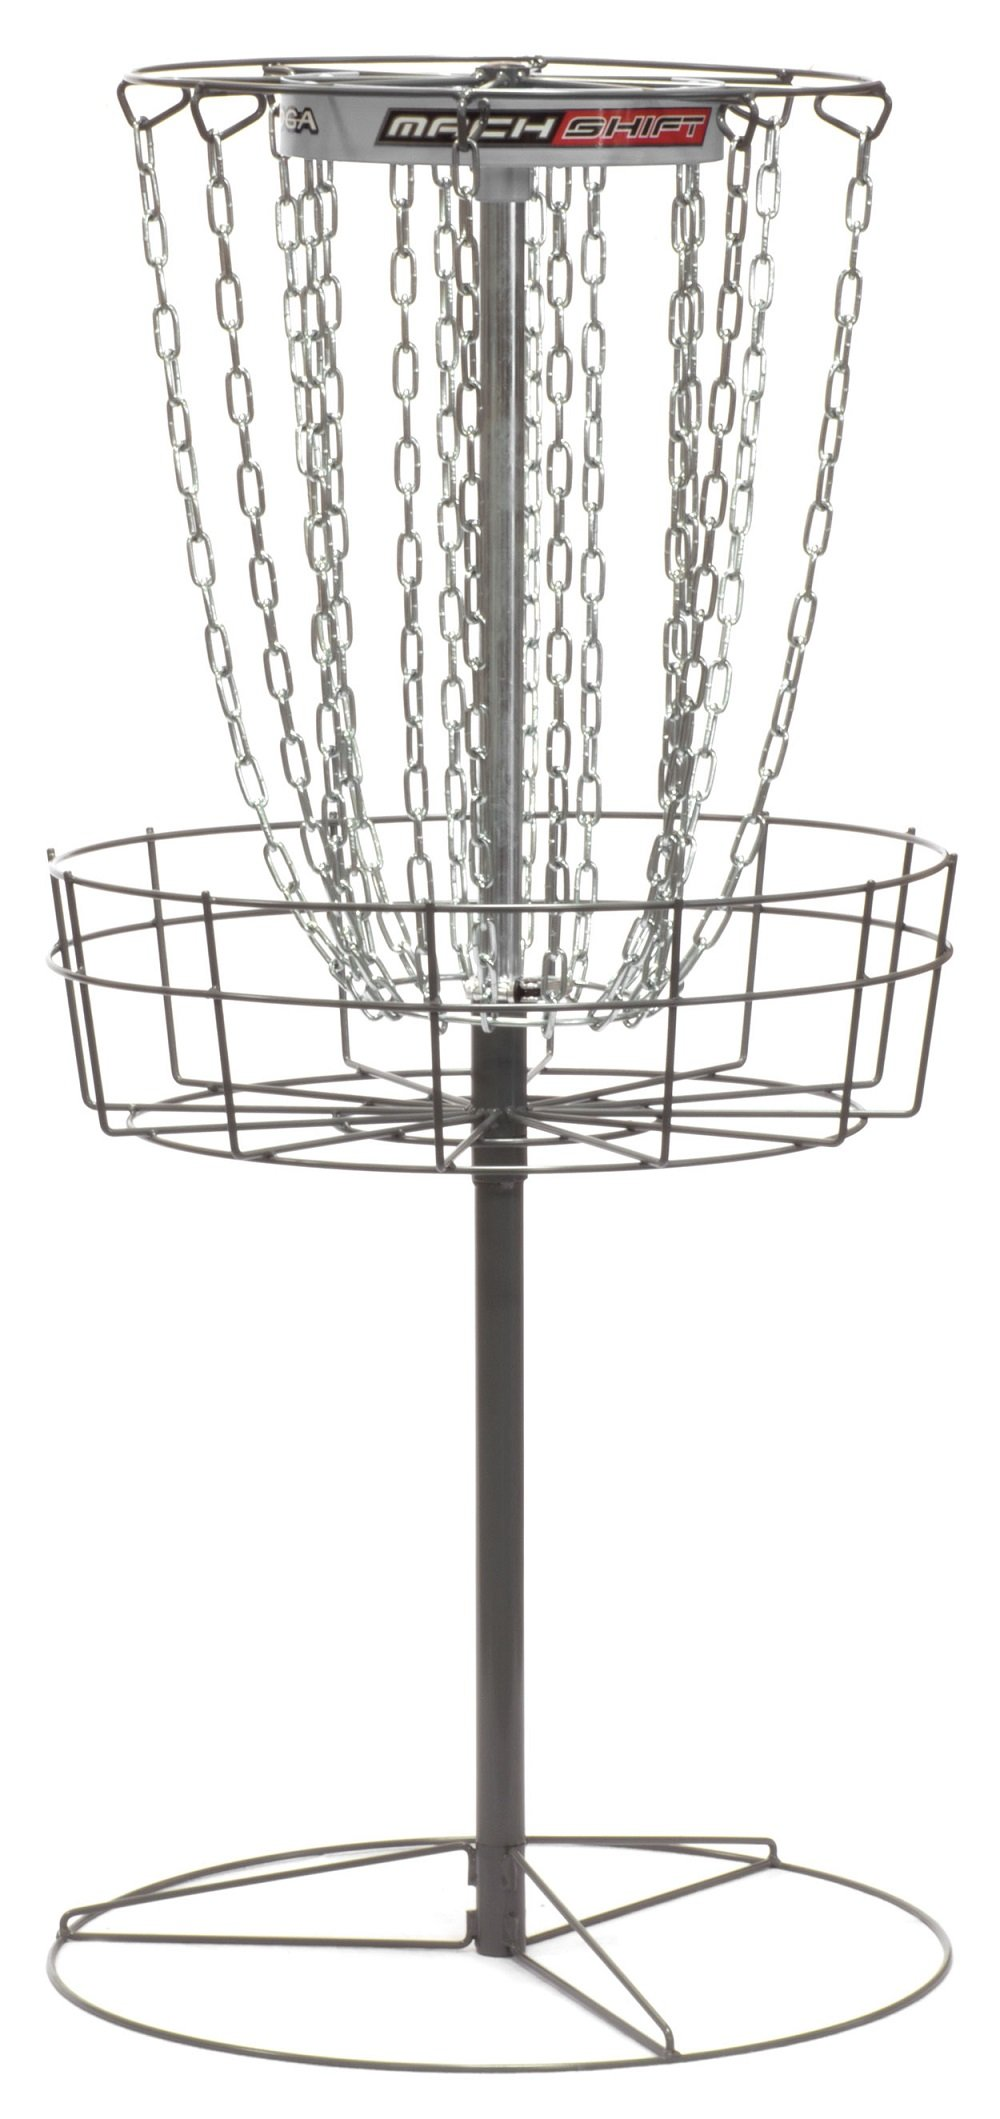 DGA Mach Shift 3-in-1 16 Chain Portable Practice Disc Golf Basket - White